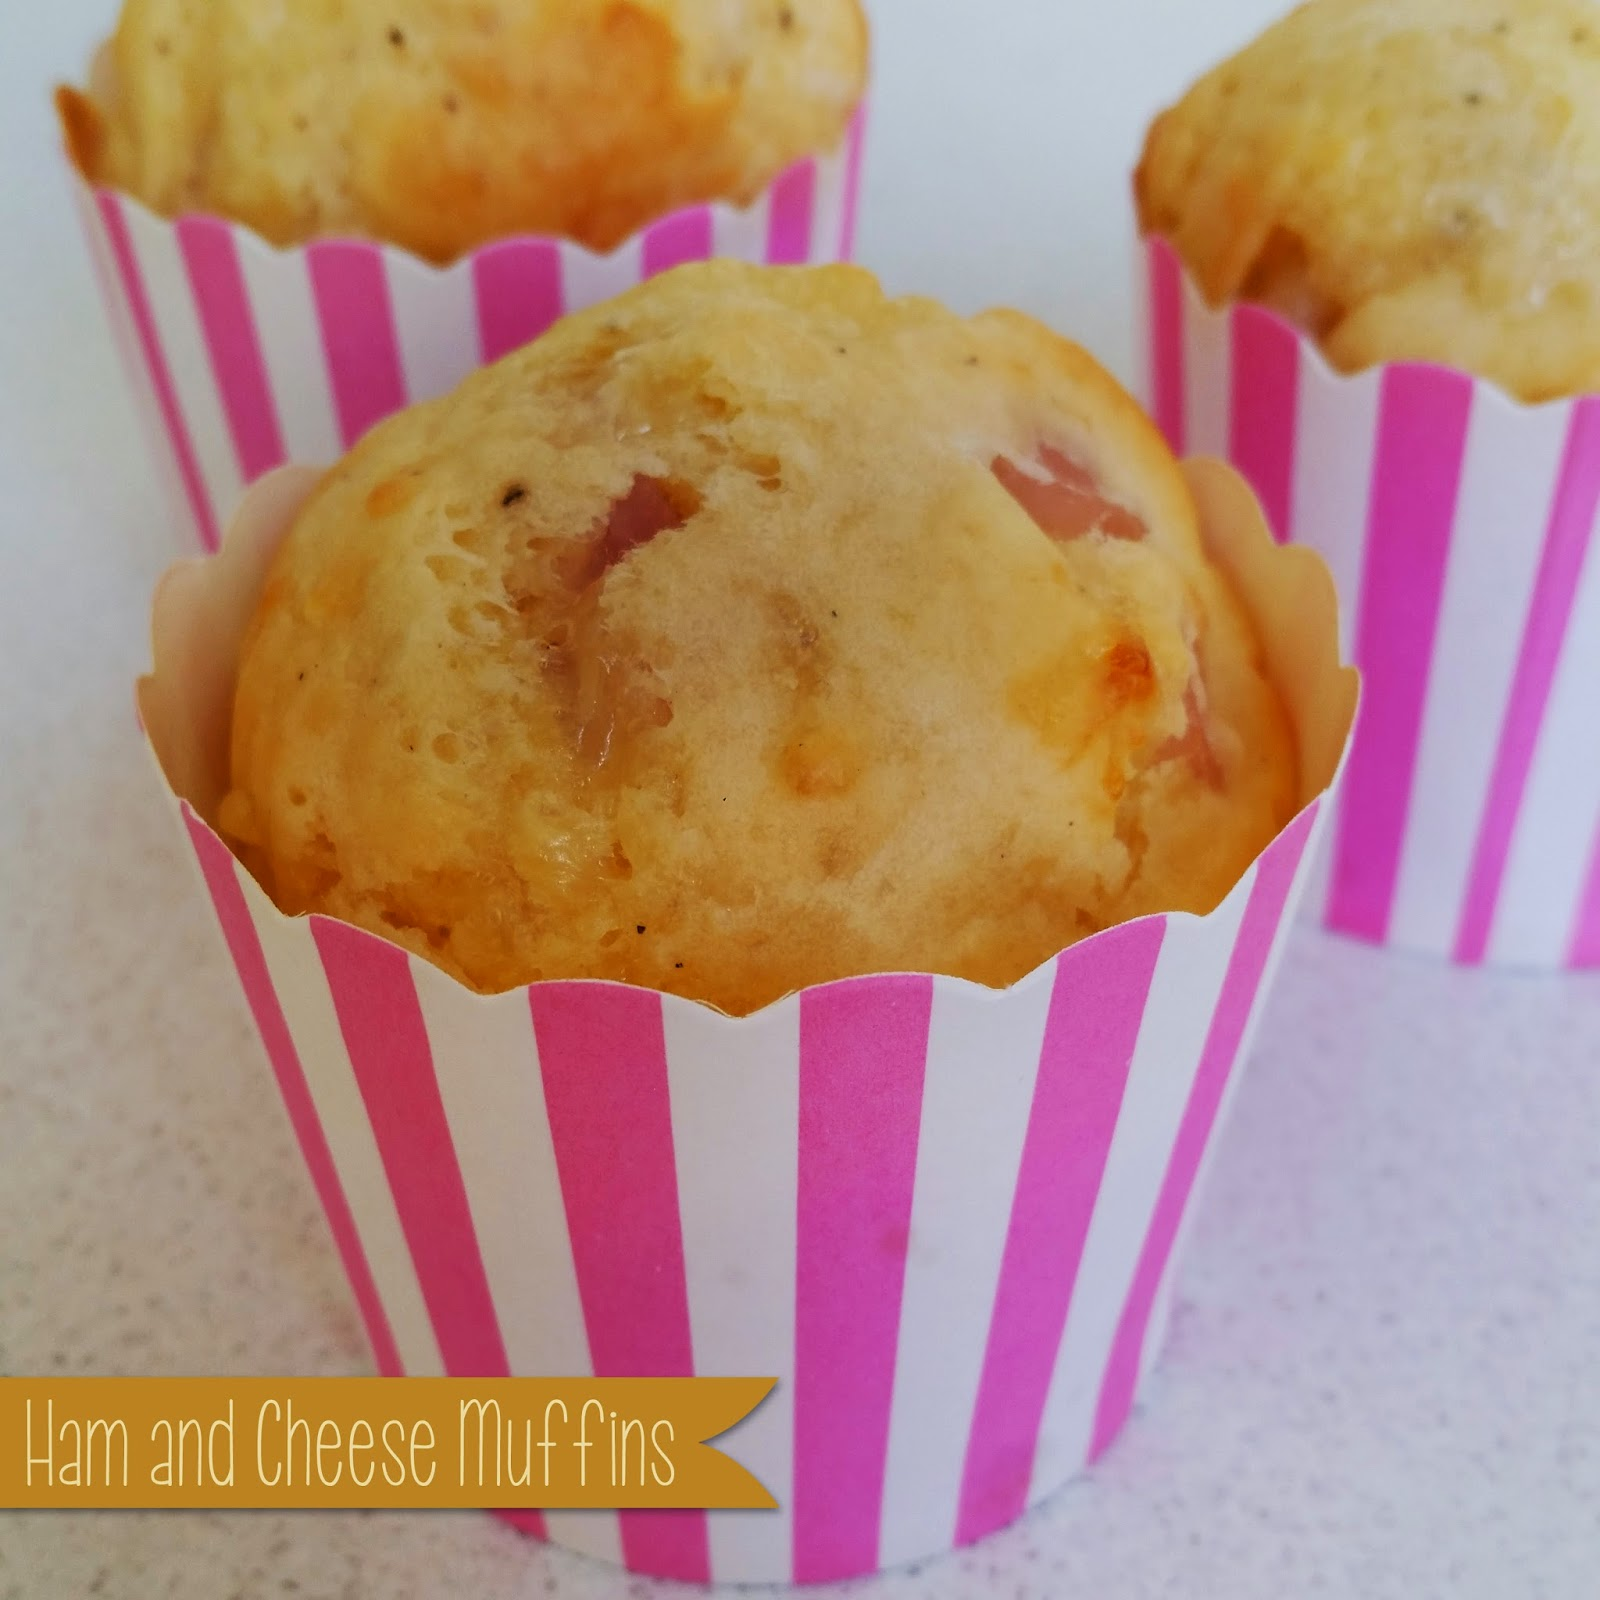 A Little Bit Of Homemade Heaven: Ham and Cheese Muffins